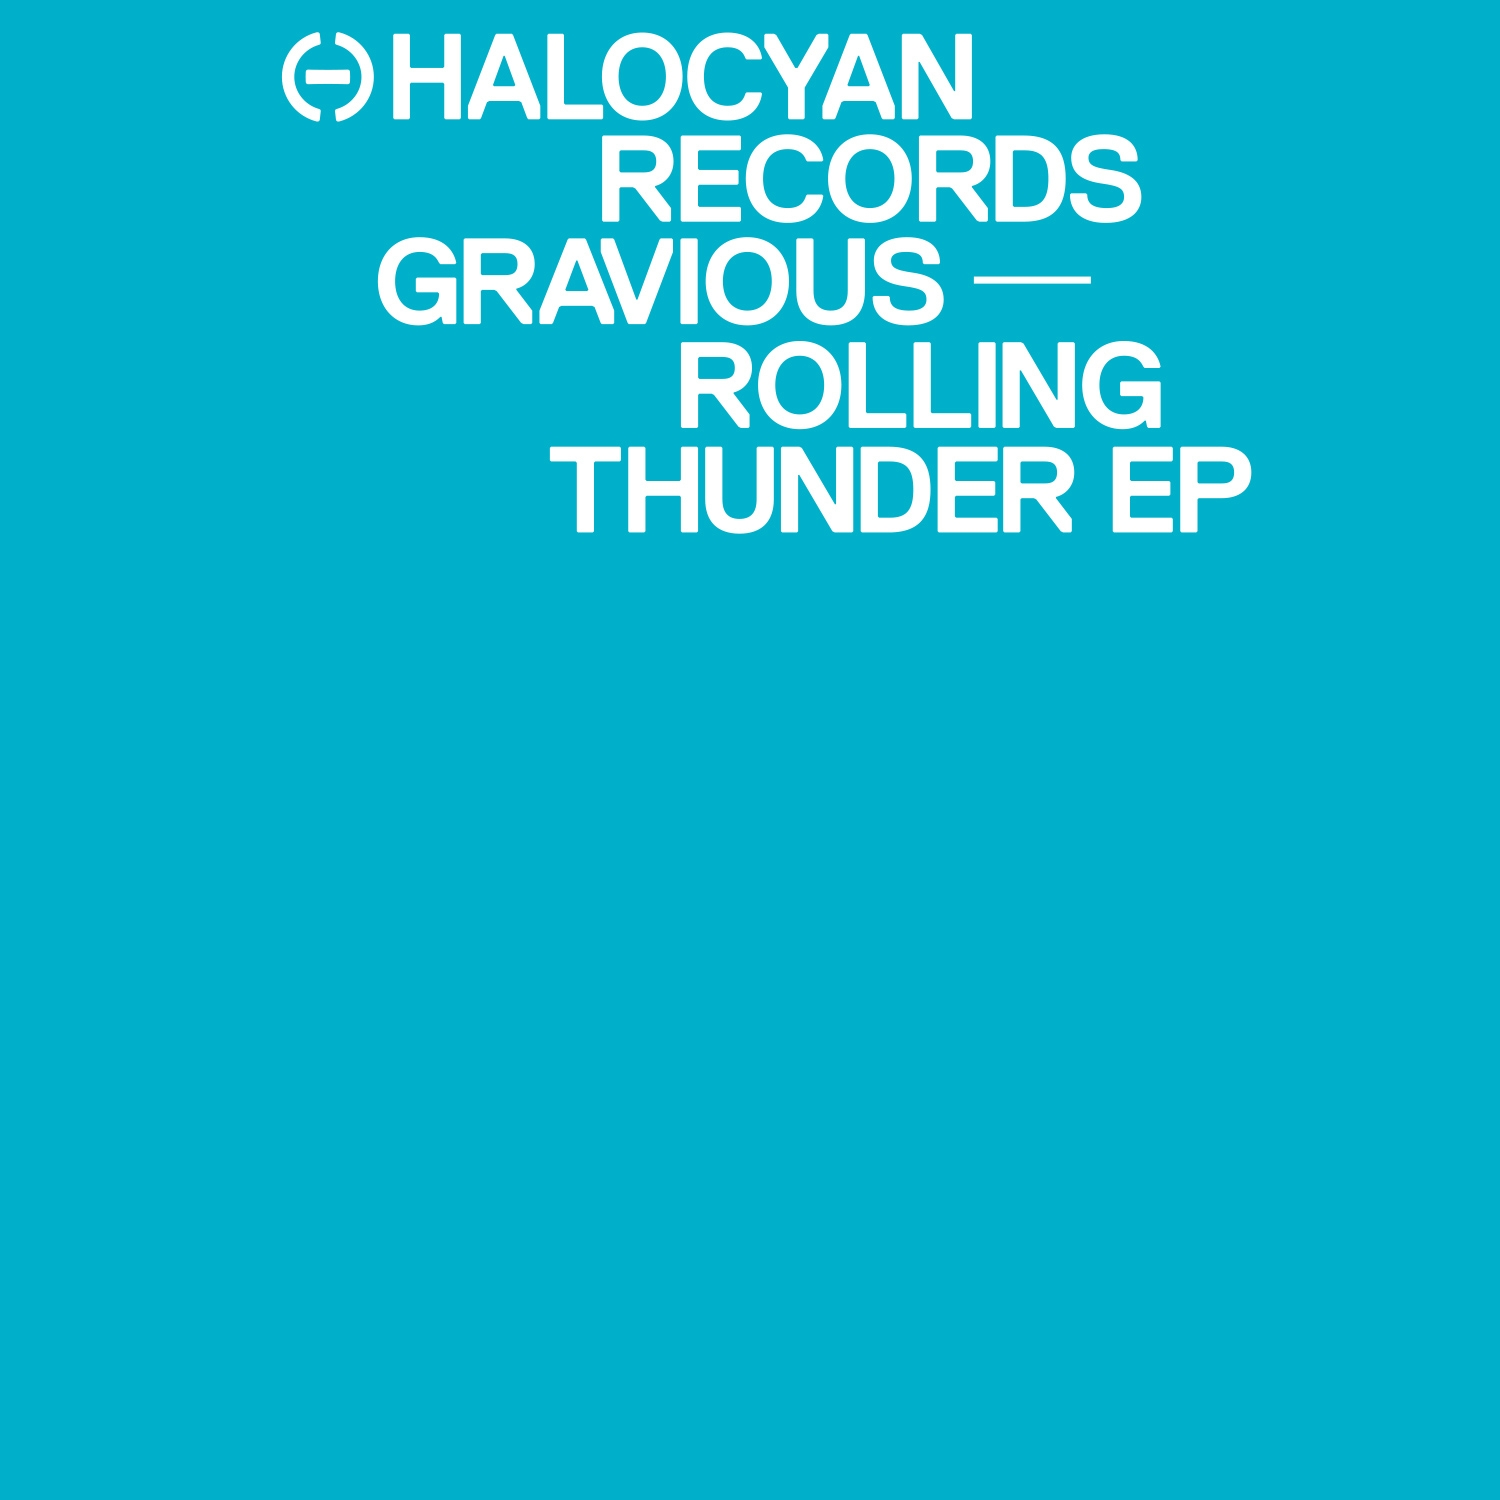 Gravious-Rolling-Thunder-Halocyan-Records-artwork